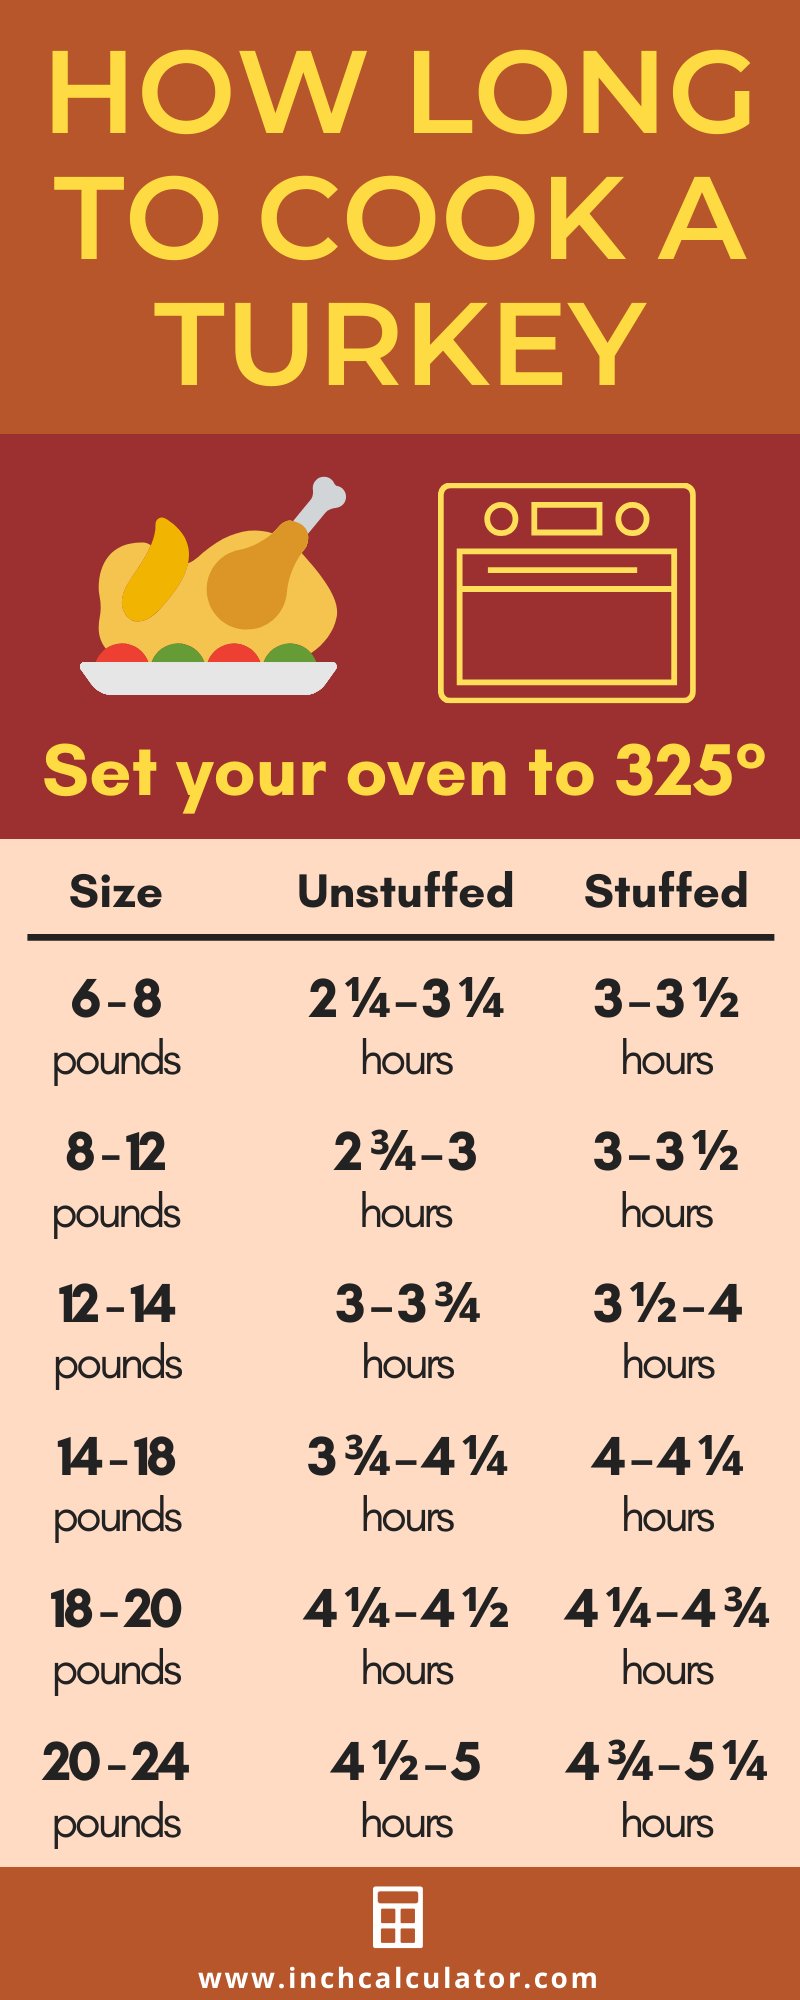 Infographic showing how long to cook a turkey in the oven